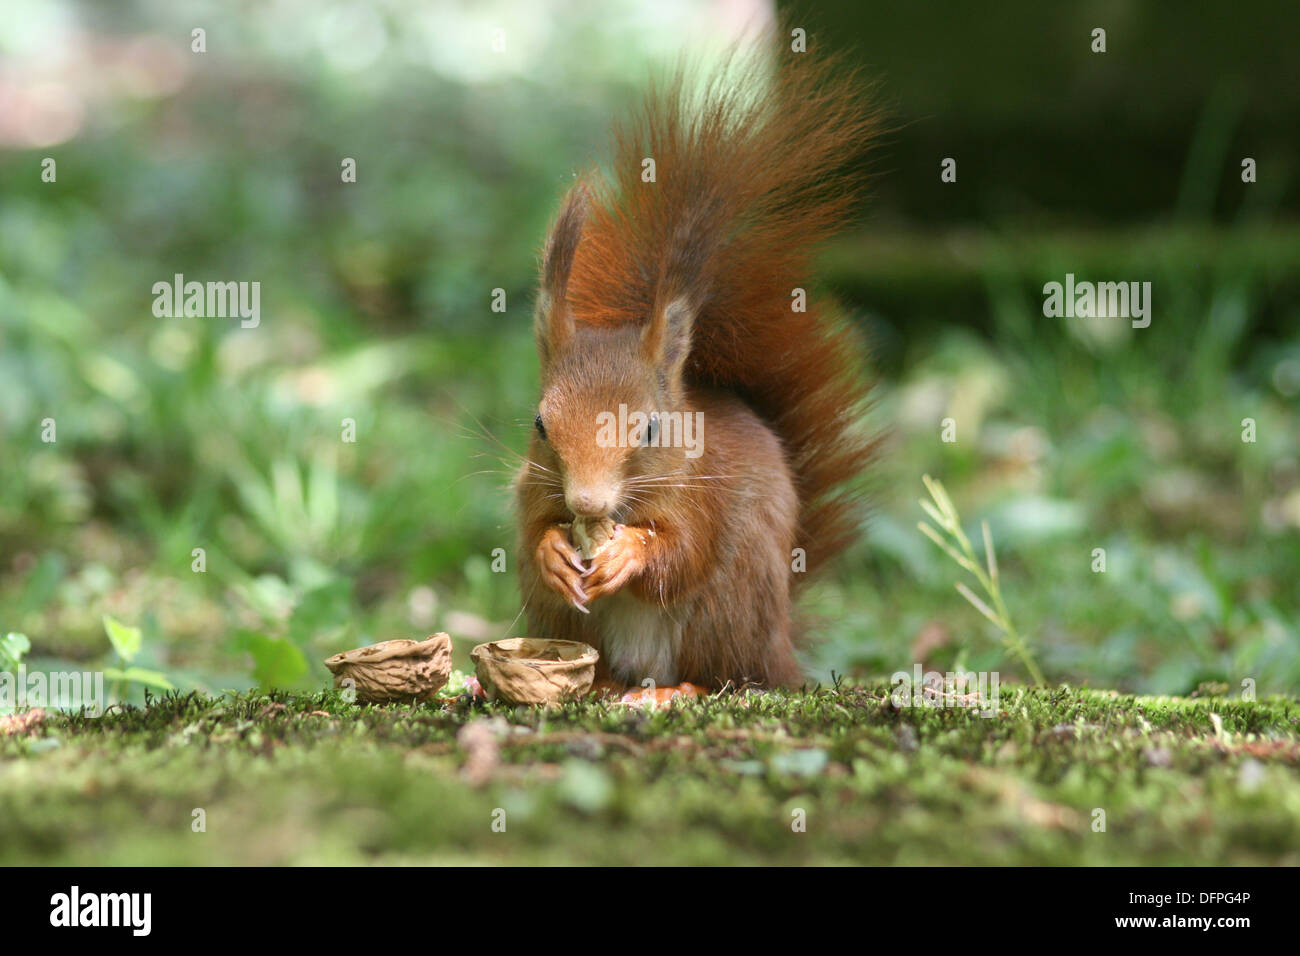 European red squirrel with cracked walnut - Stock Image